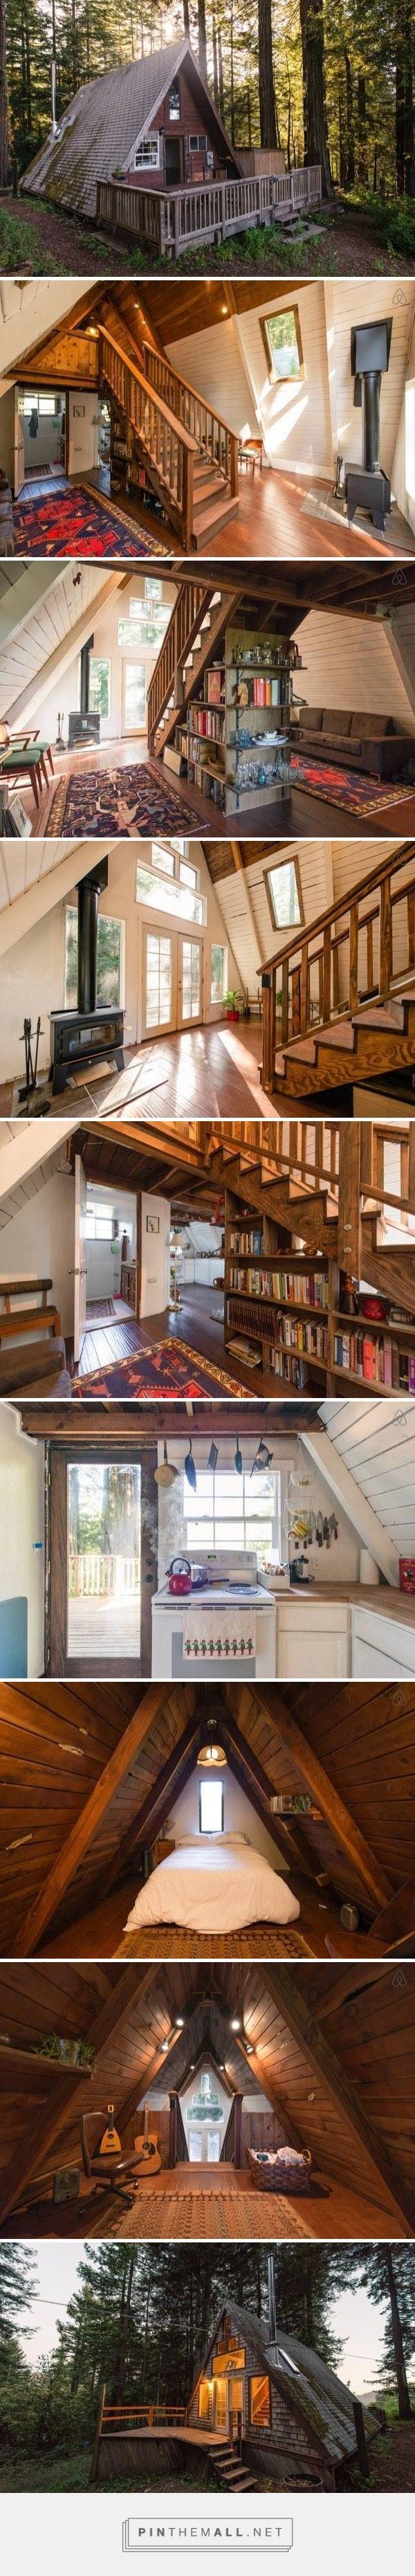 162 best Stairs images on Pinterest | Stairways, House stairs and ...